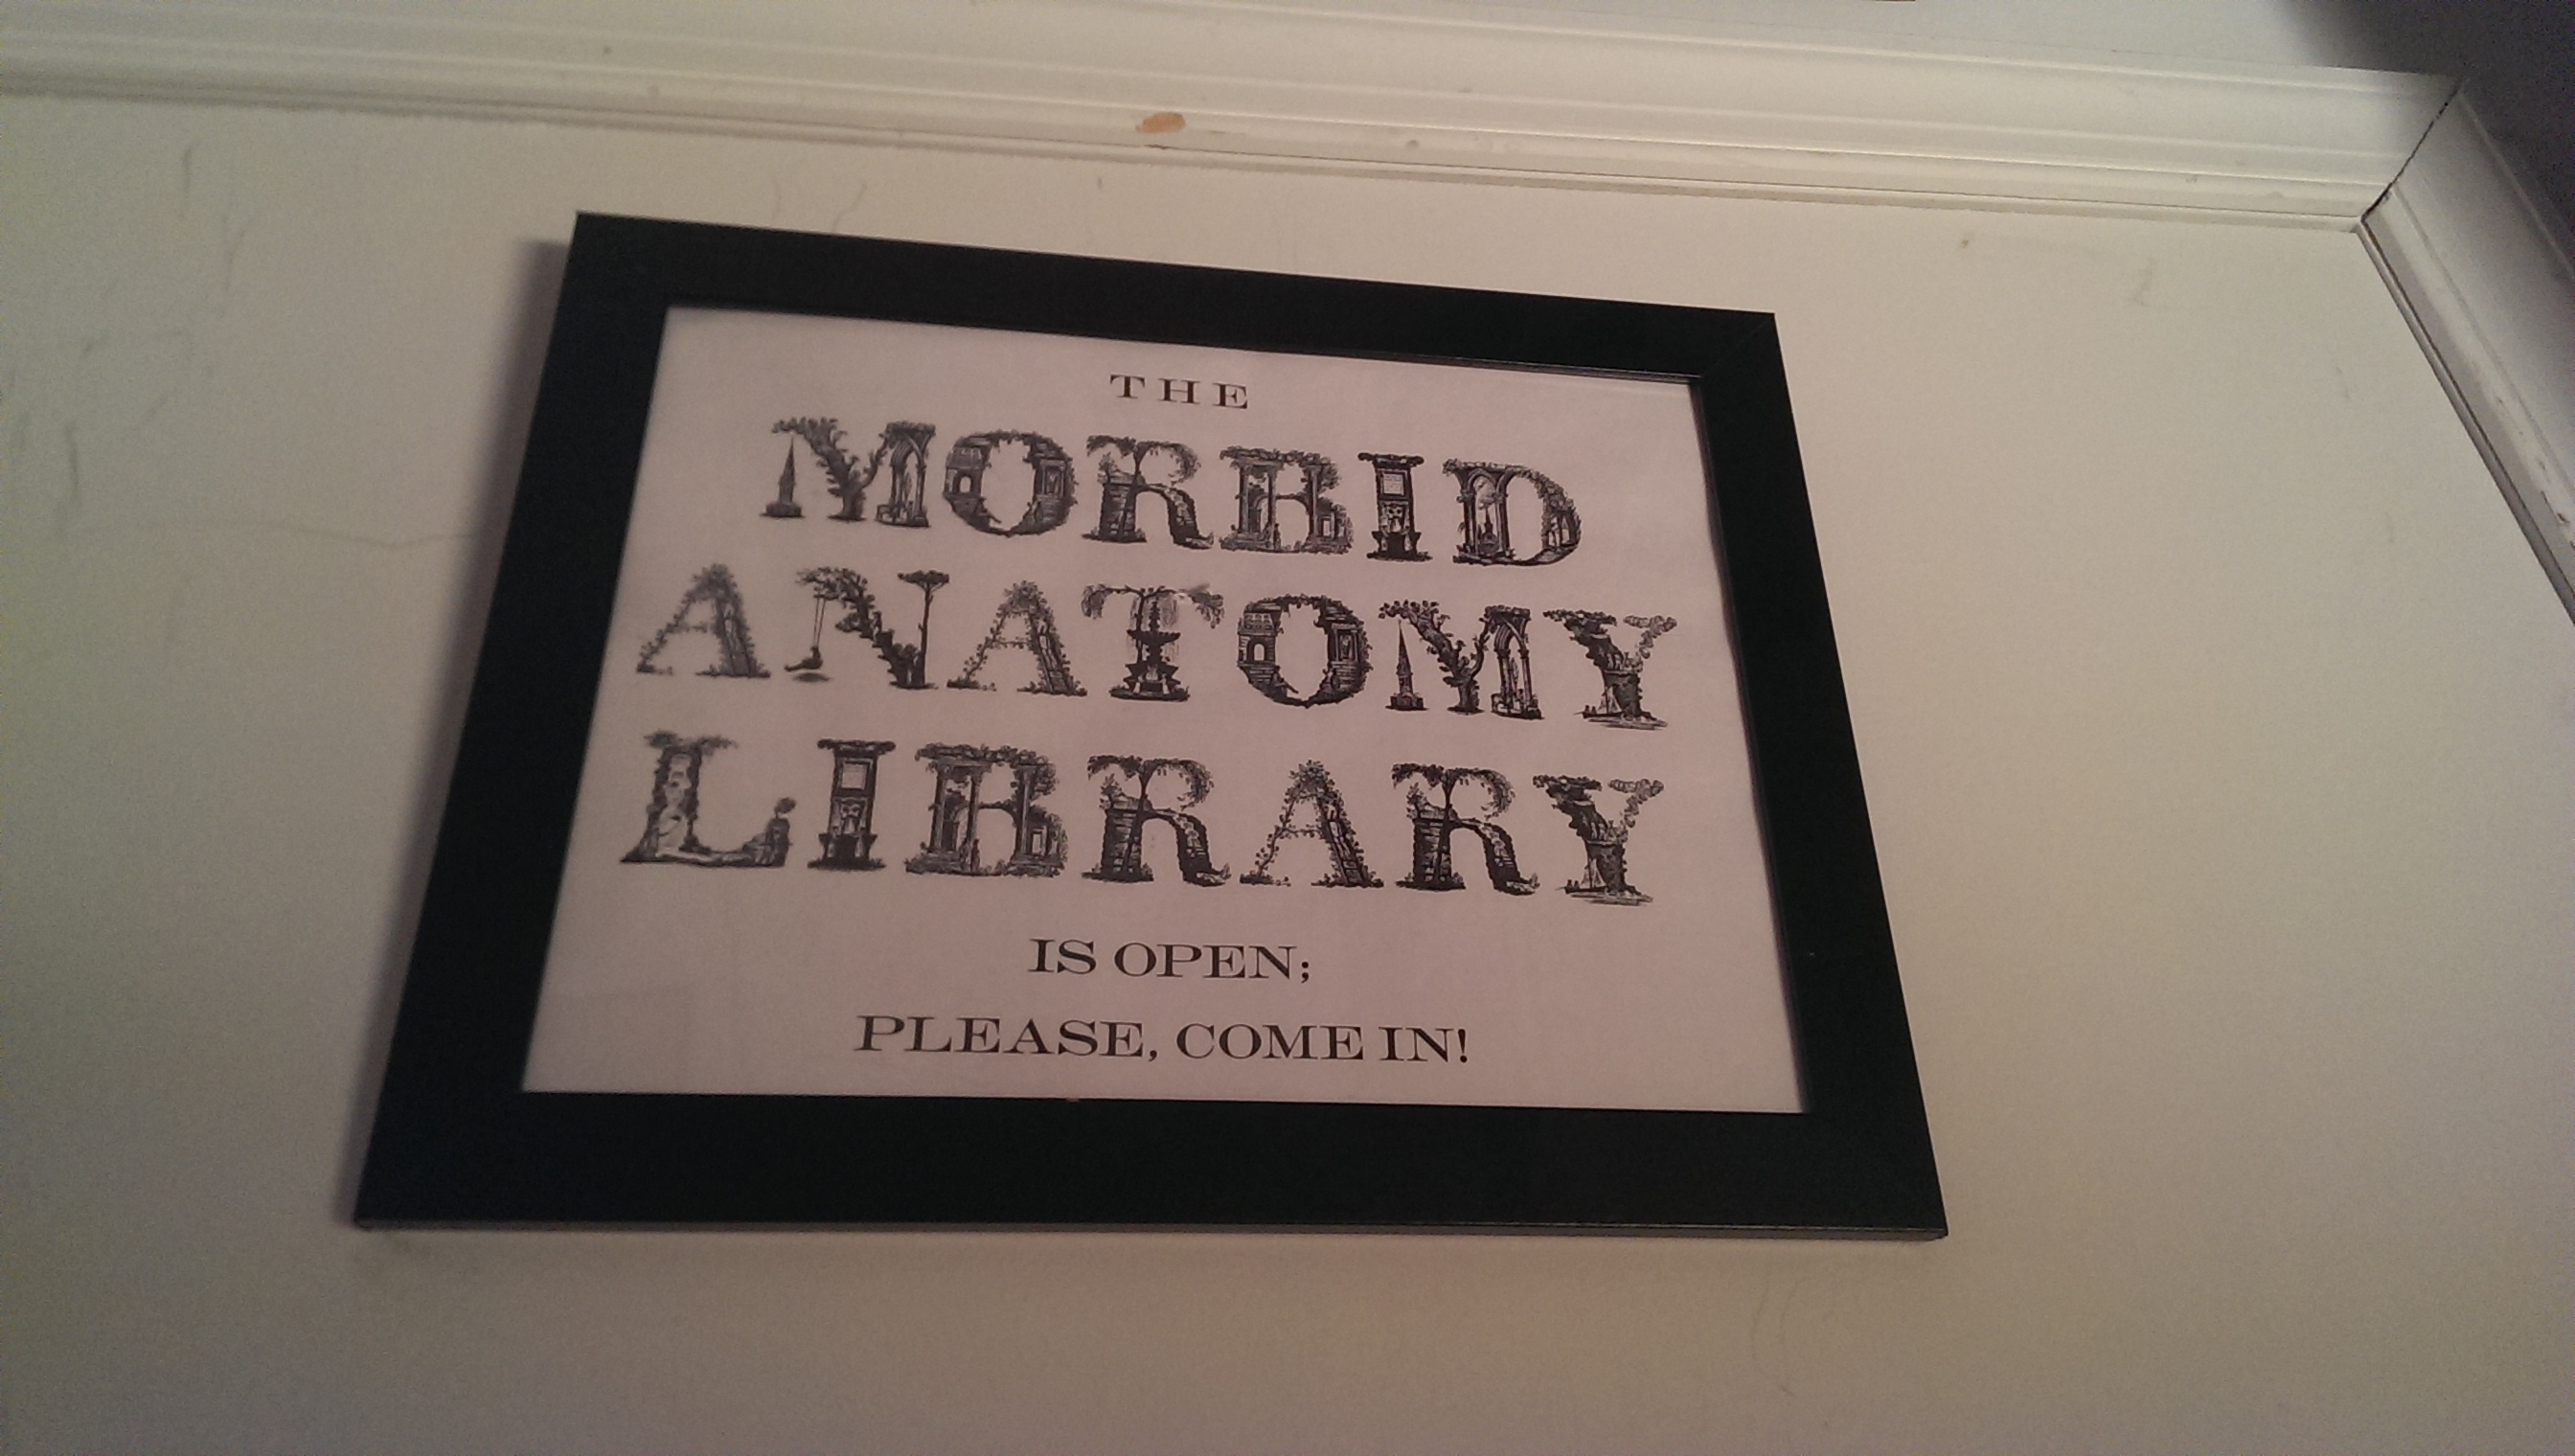 At the Morbid Anatomy Library in Brooklyn.